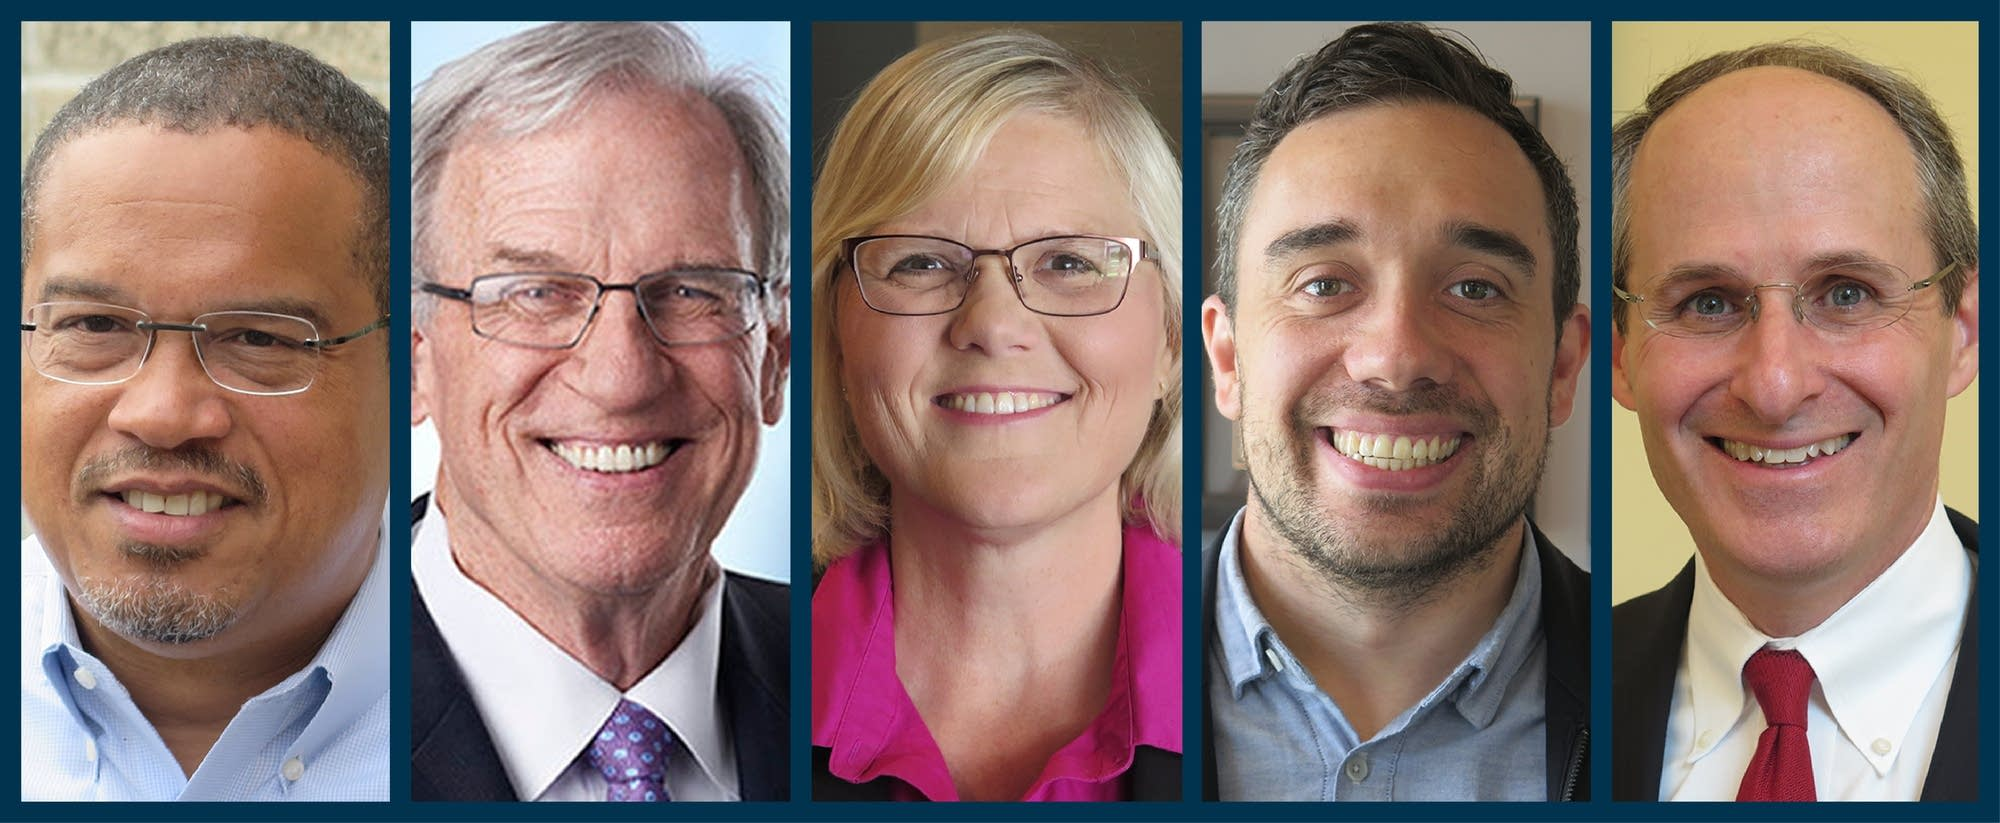 Candidates for Minnesota attorney general